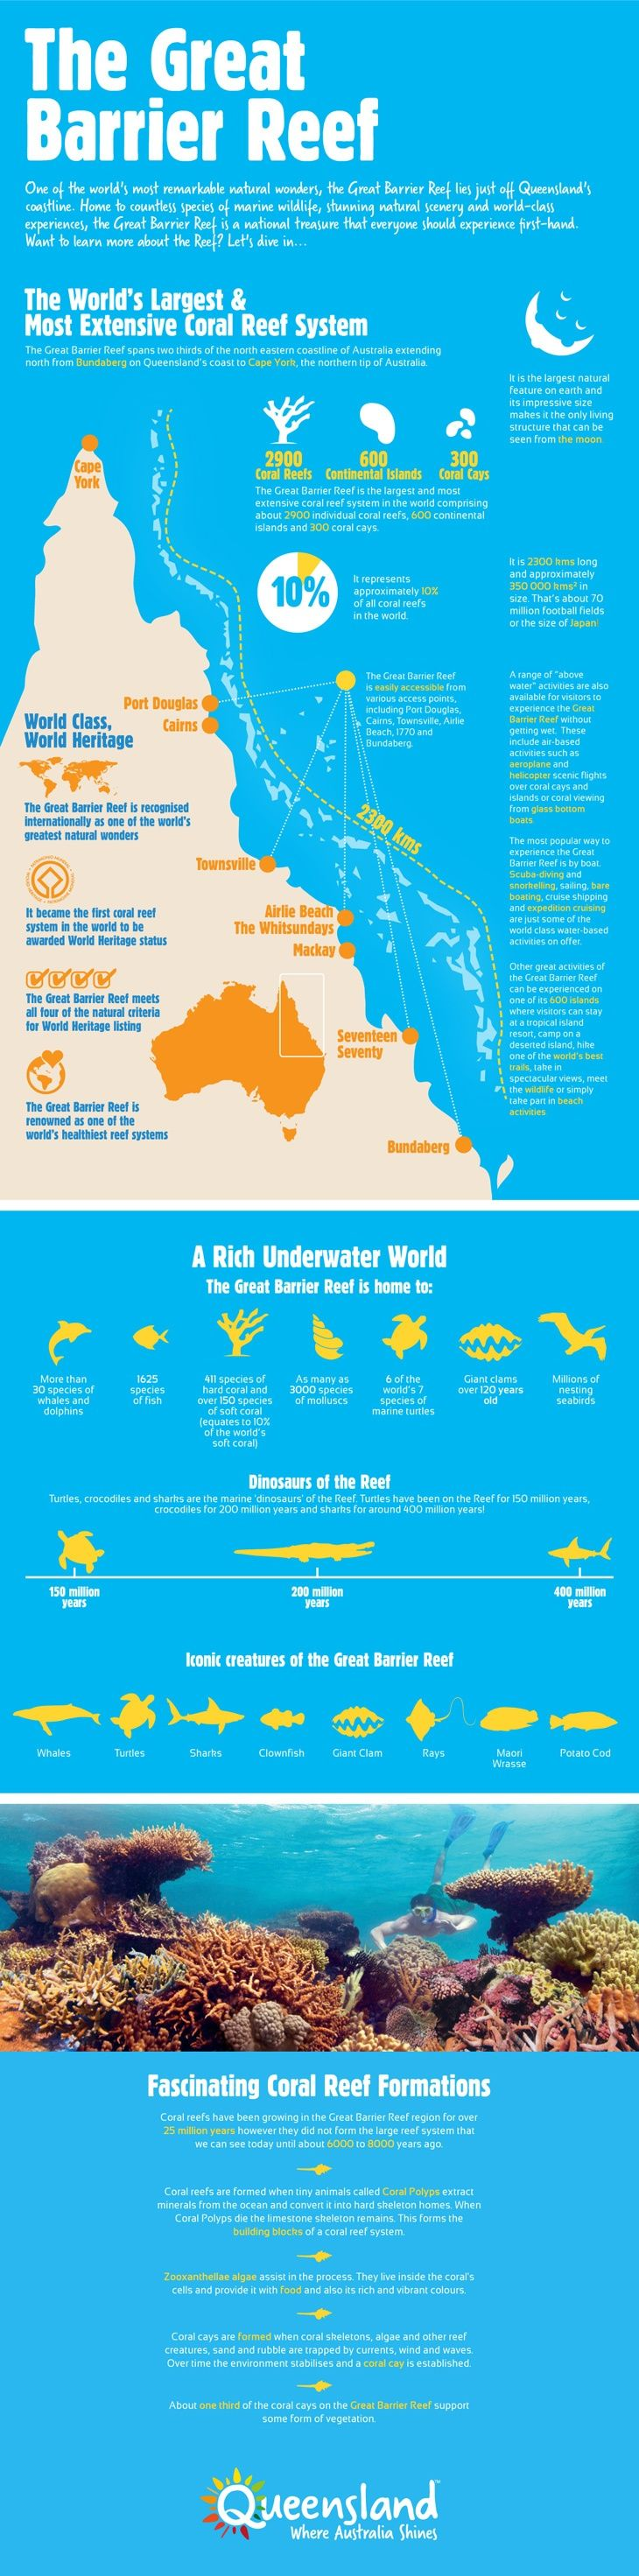 The great barrier reef of Australia.